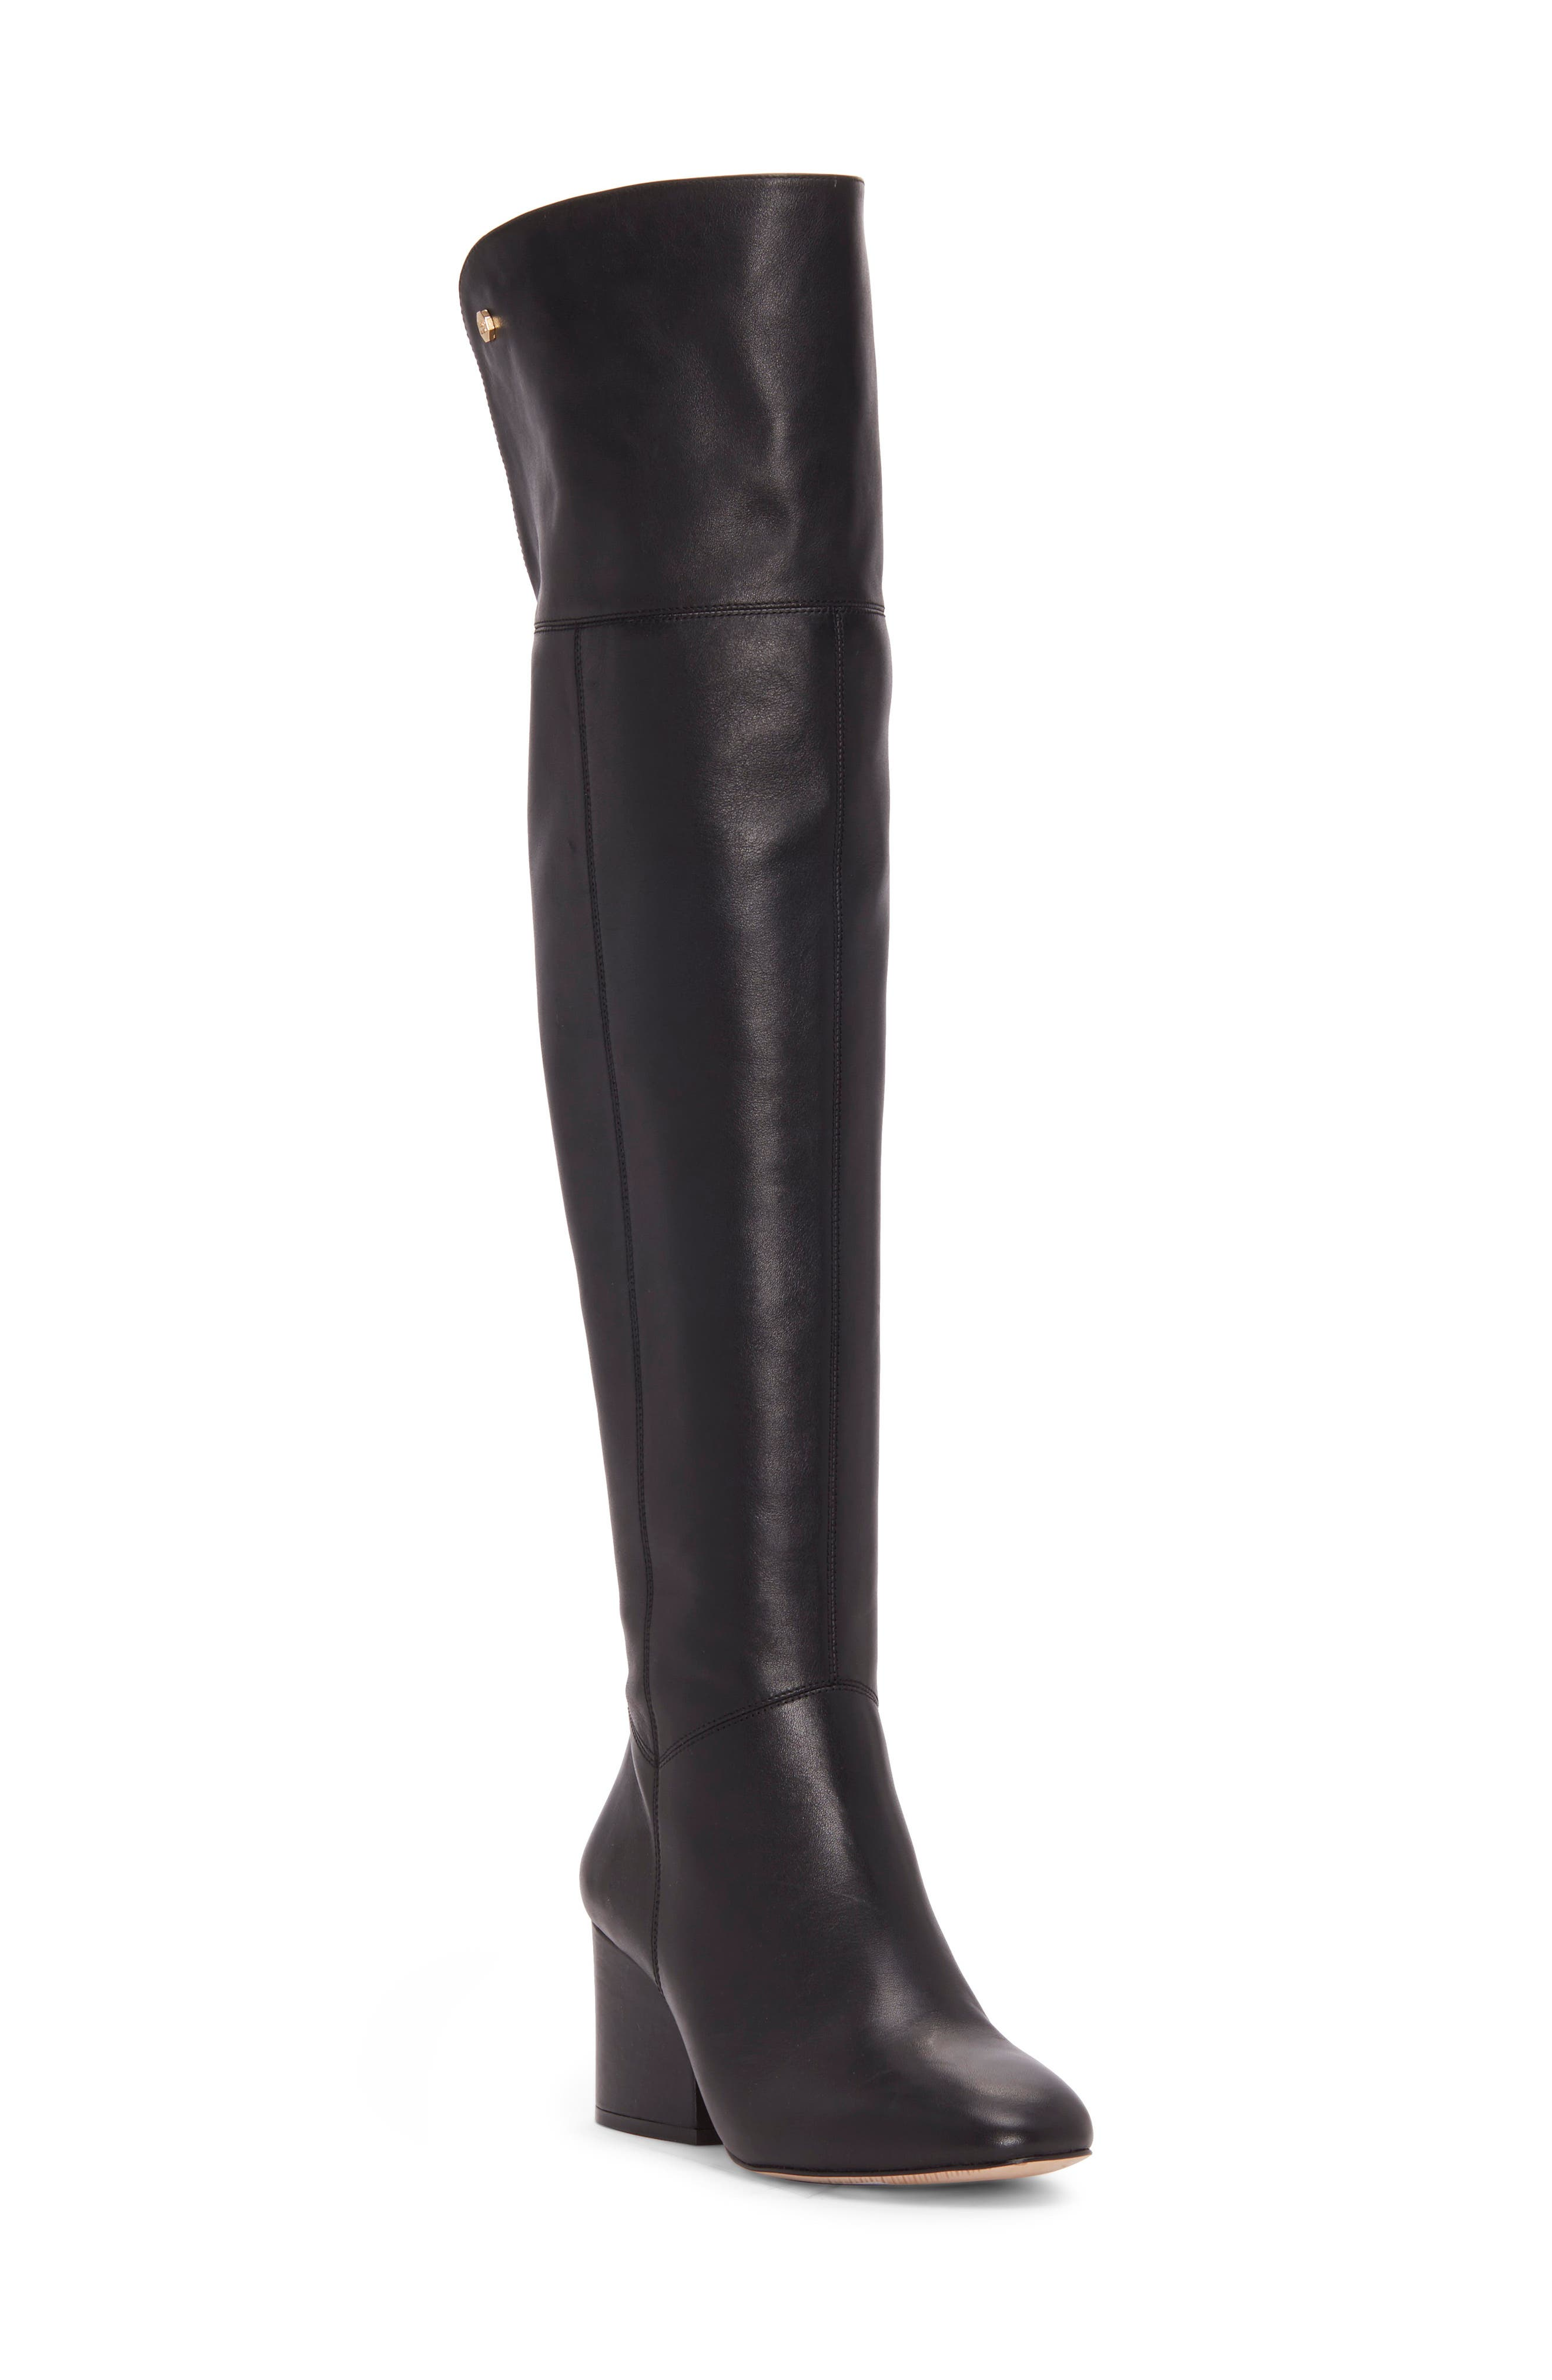 Louise et Cie Vayna Over the Knee Boot (Women)